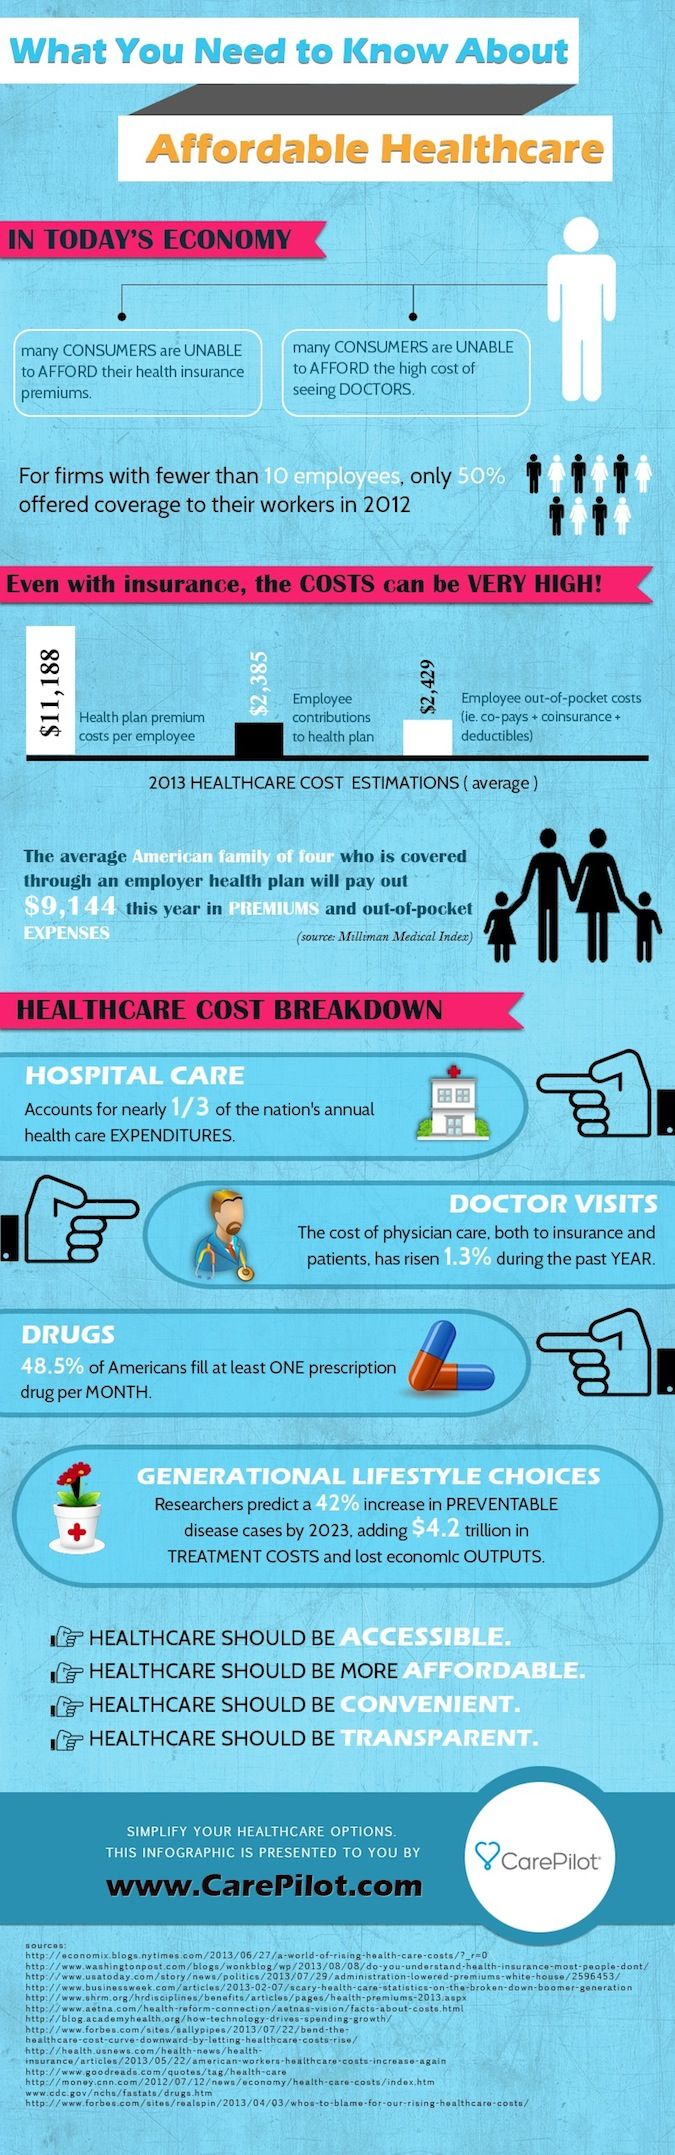 Healthcare-Advertising-www.carepilot.com_...-What-You-Need-To-Know-About-Affordable-Healthcare-Infogra Healthcare Advertising : www.carepilot.com...  What You Need To Know About Affordable Healthcare [Infogra...